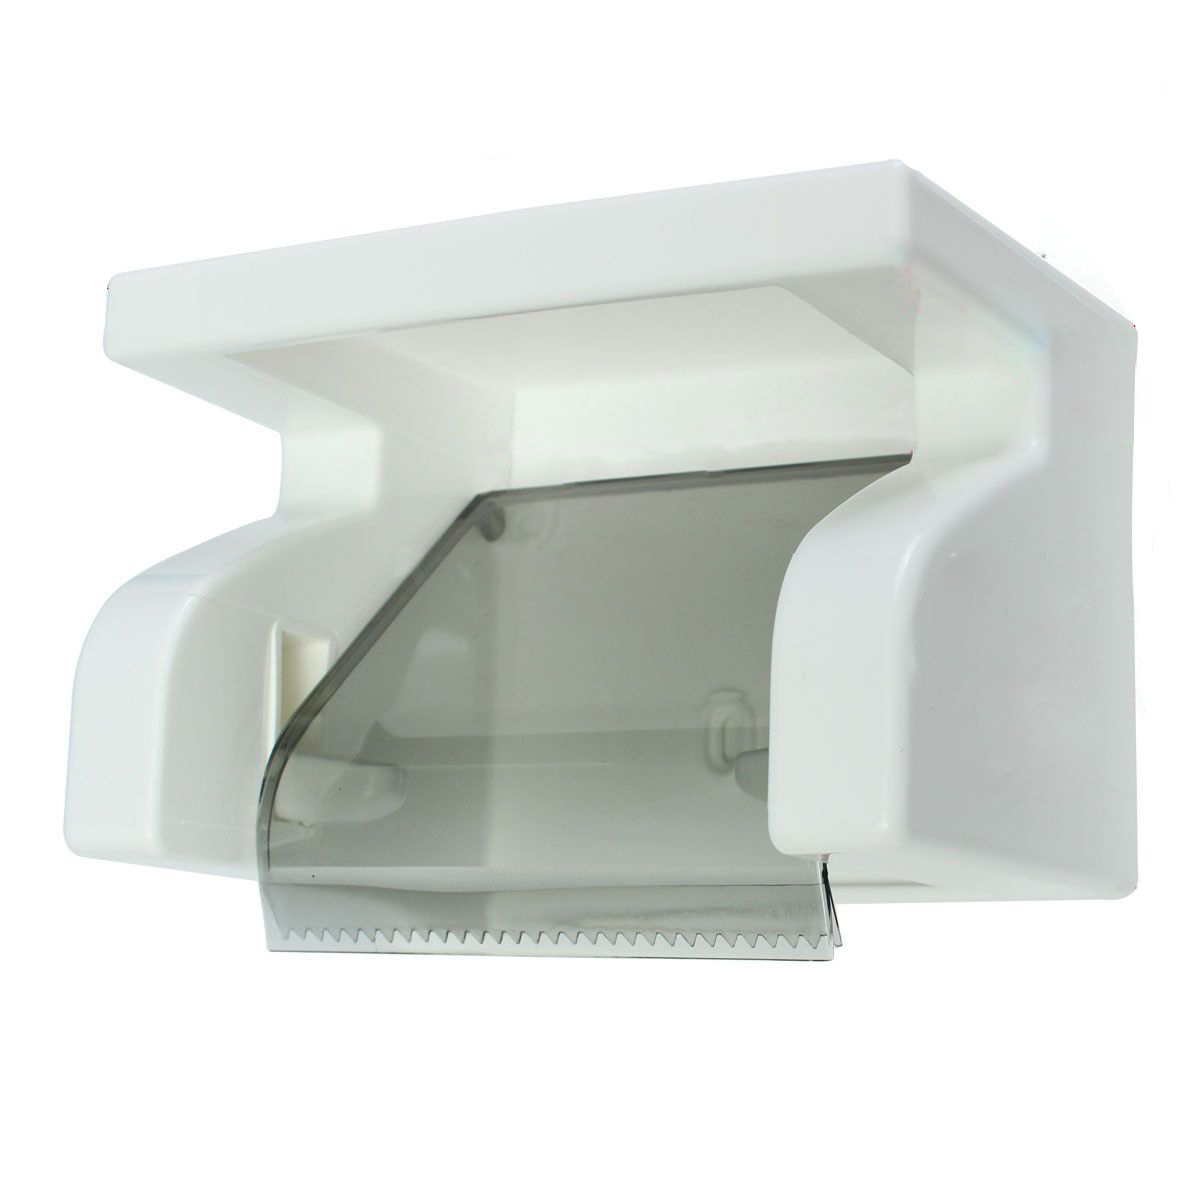 Waterproof Toilet Paper Holder Tissue Roll Stand Box With Shelf Rack Bathroom In Holders From Home Improvement On Aliexpress Alibaba Group